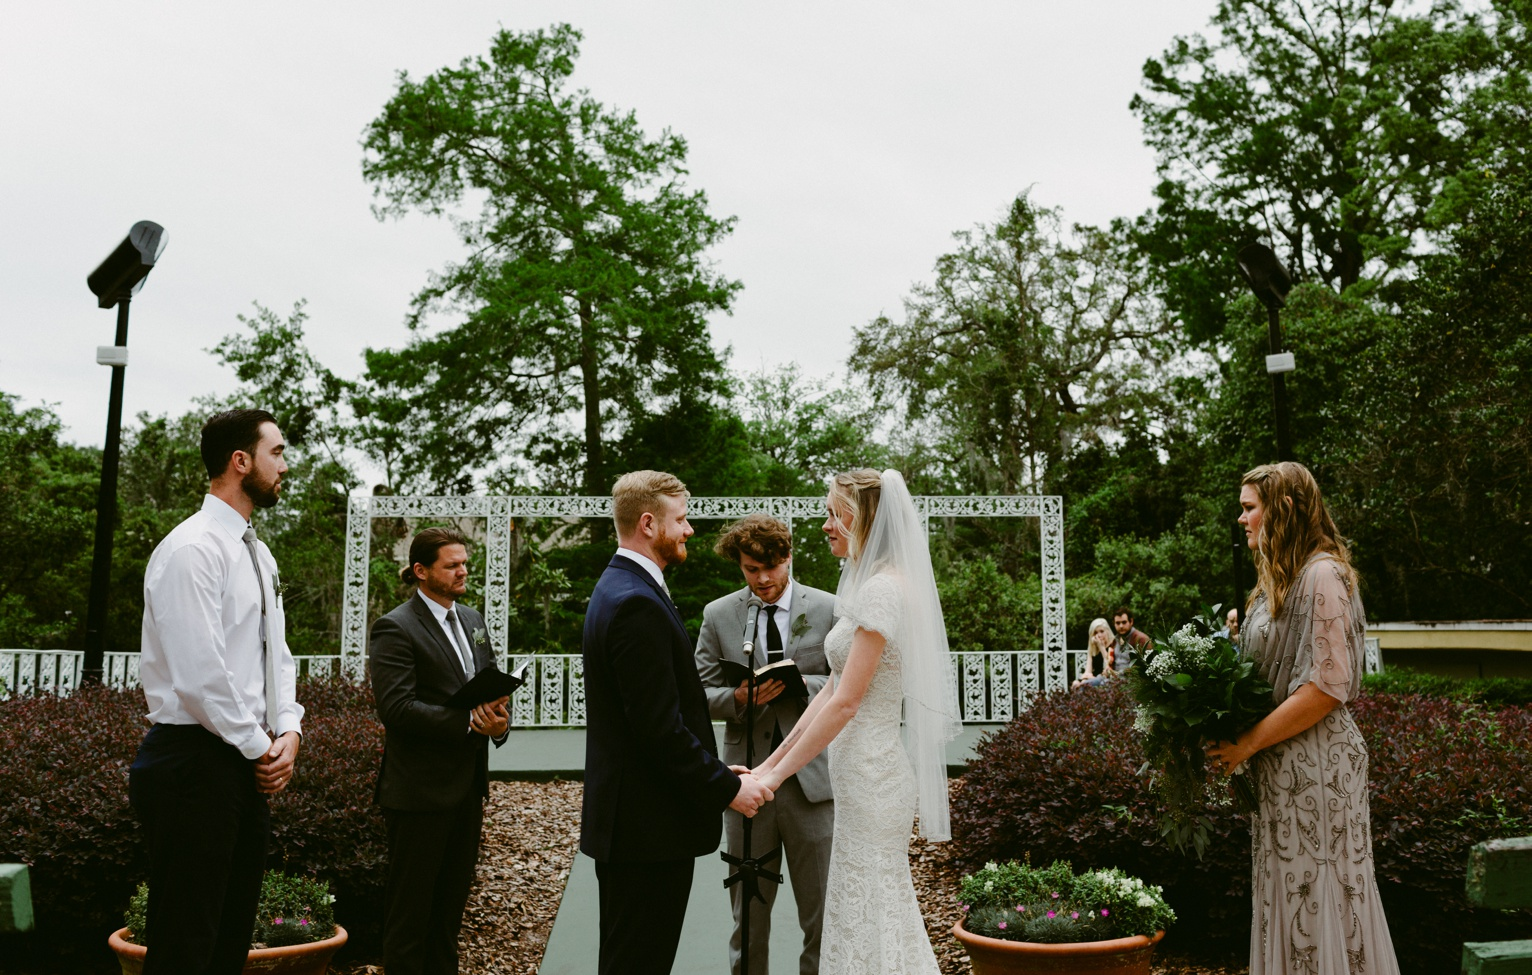 Dreamtownco.com_blog_Michael&Carlin_Wedding_0136.jpg